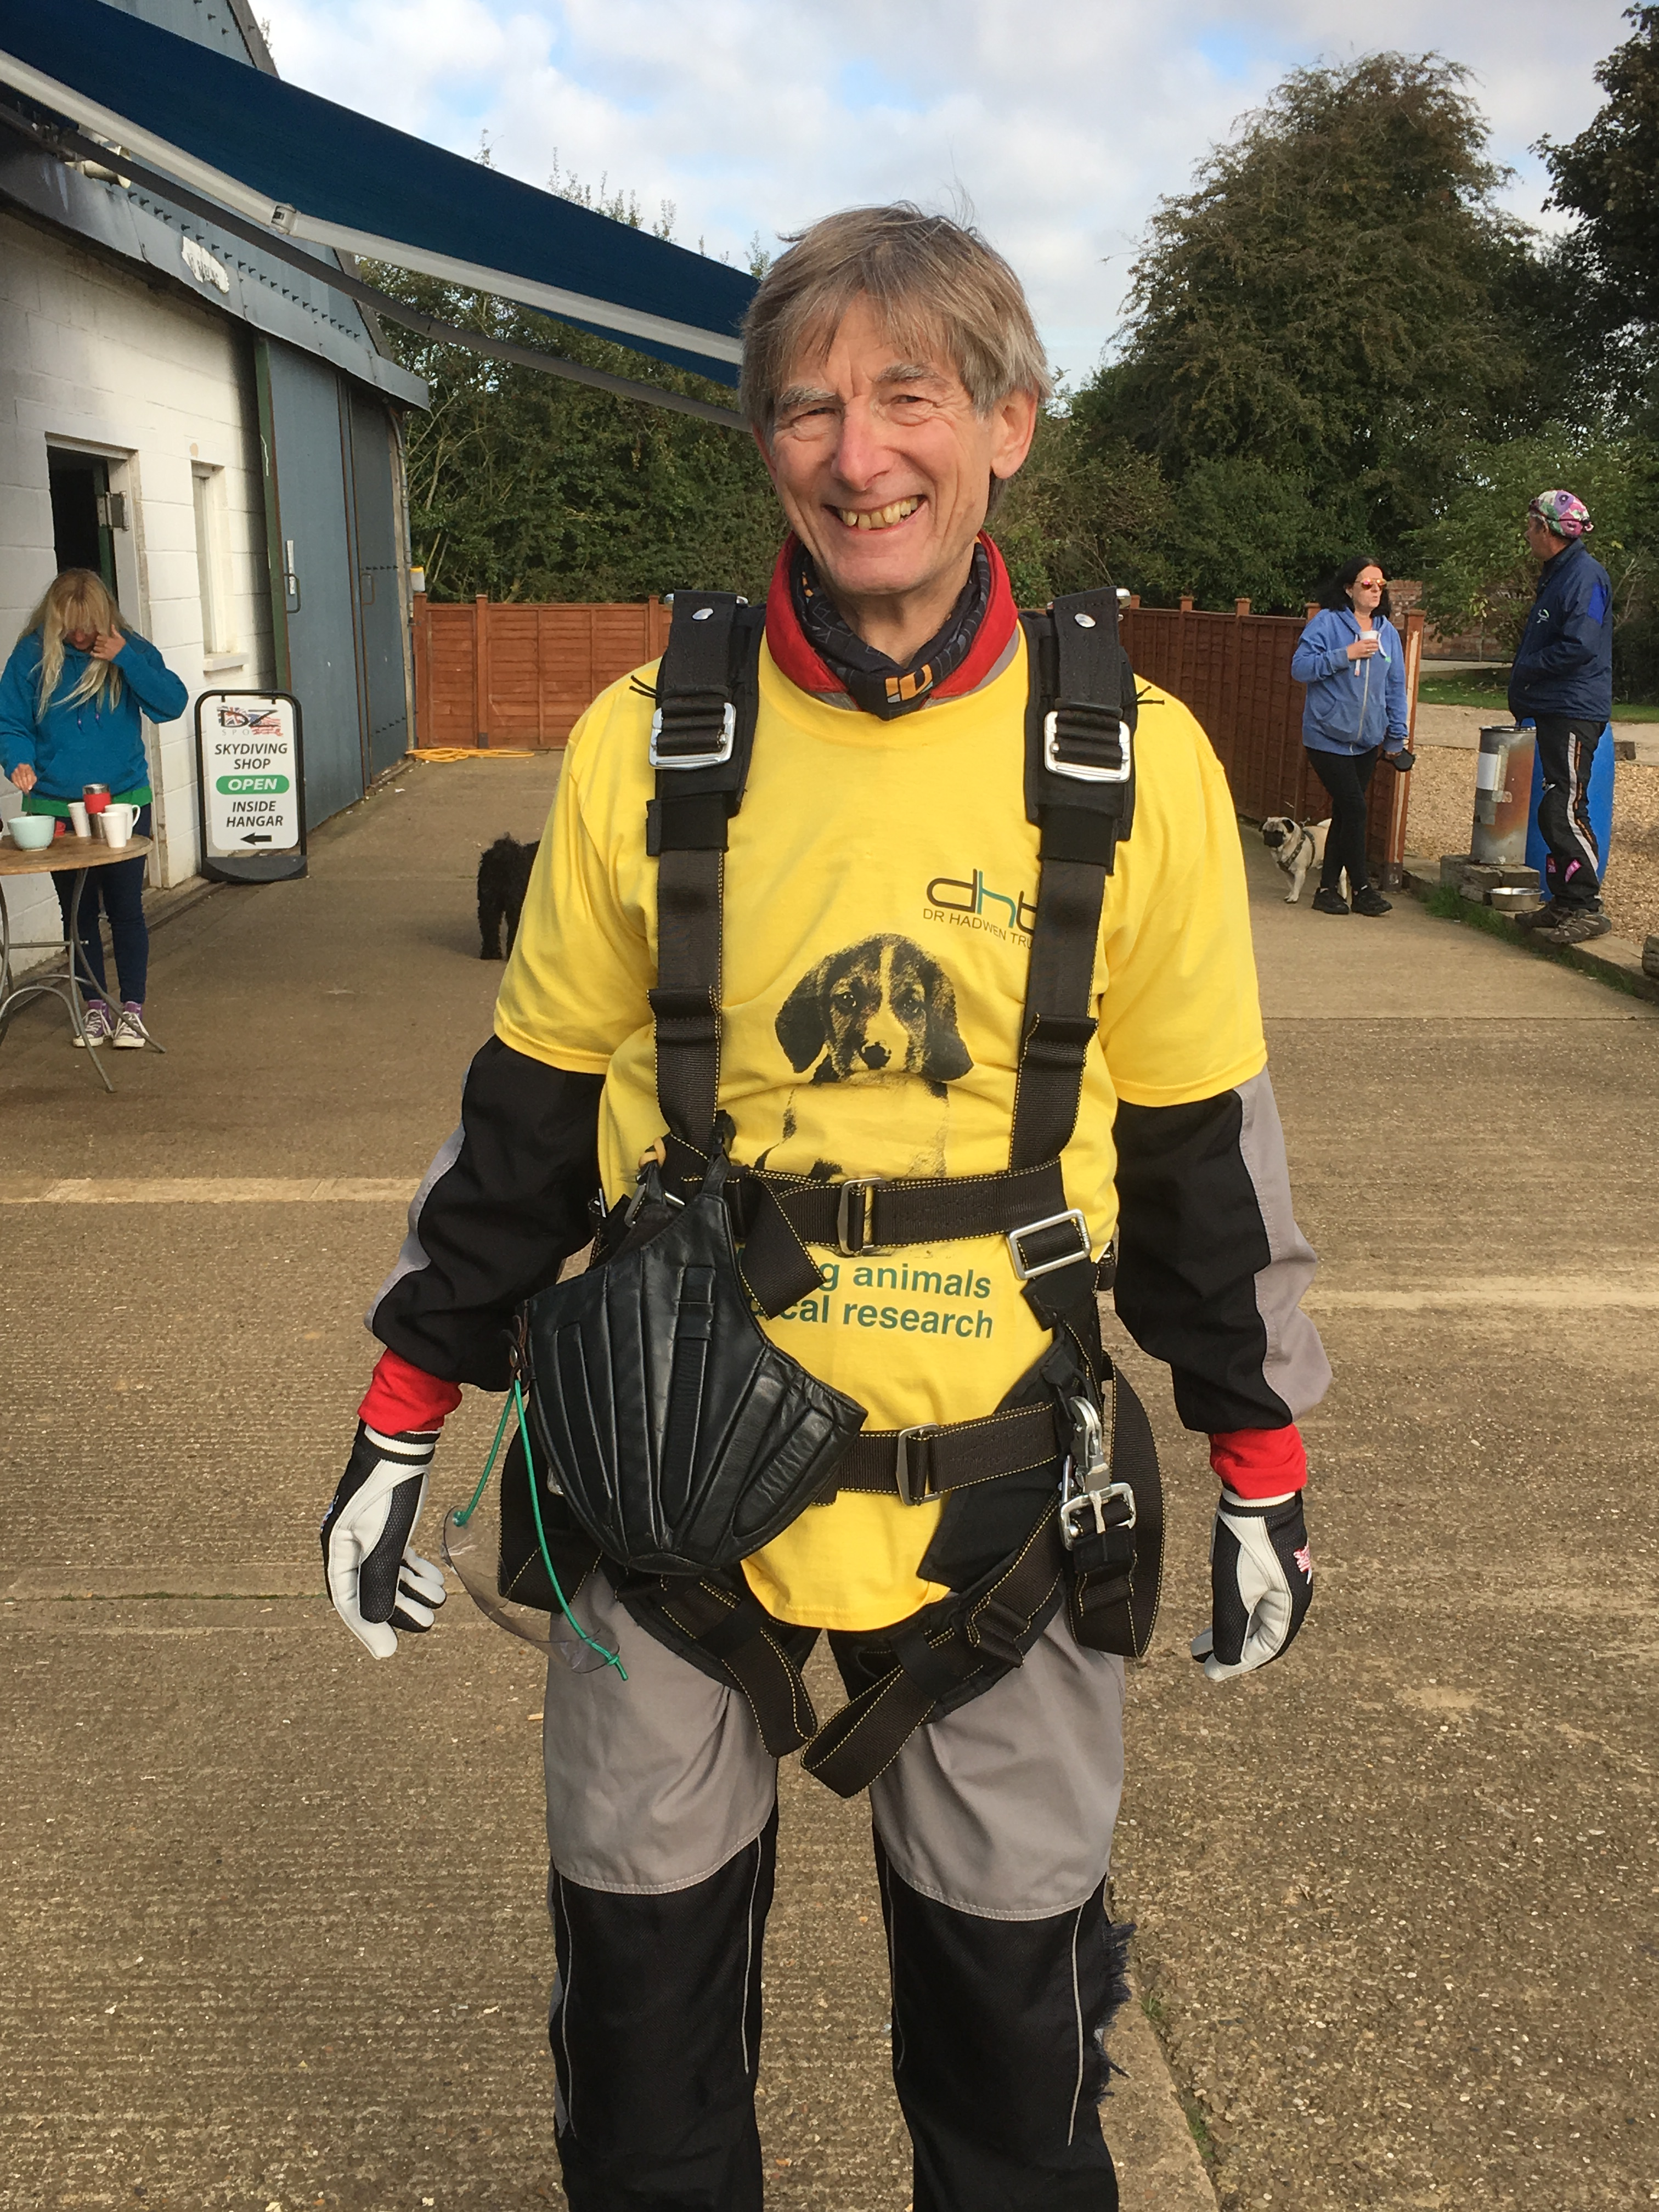 Supporter at a skydive